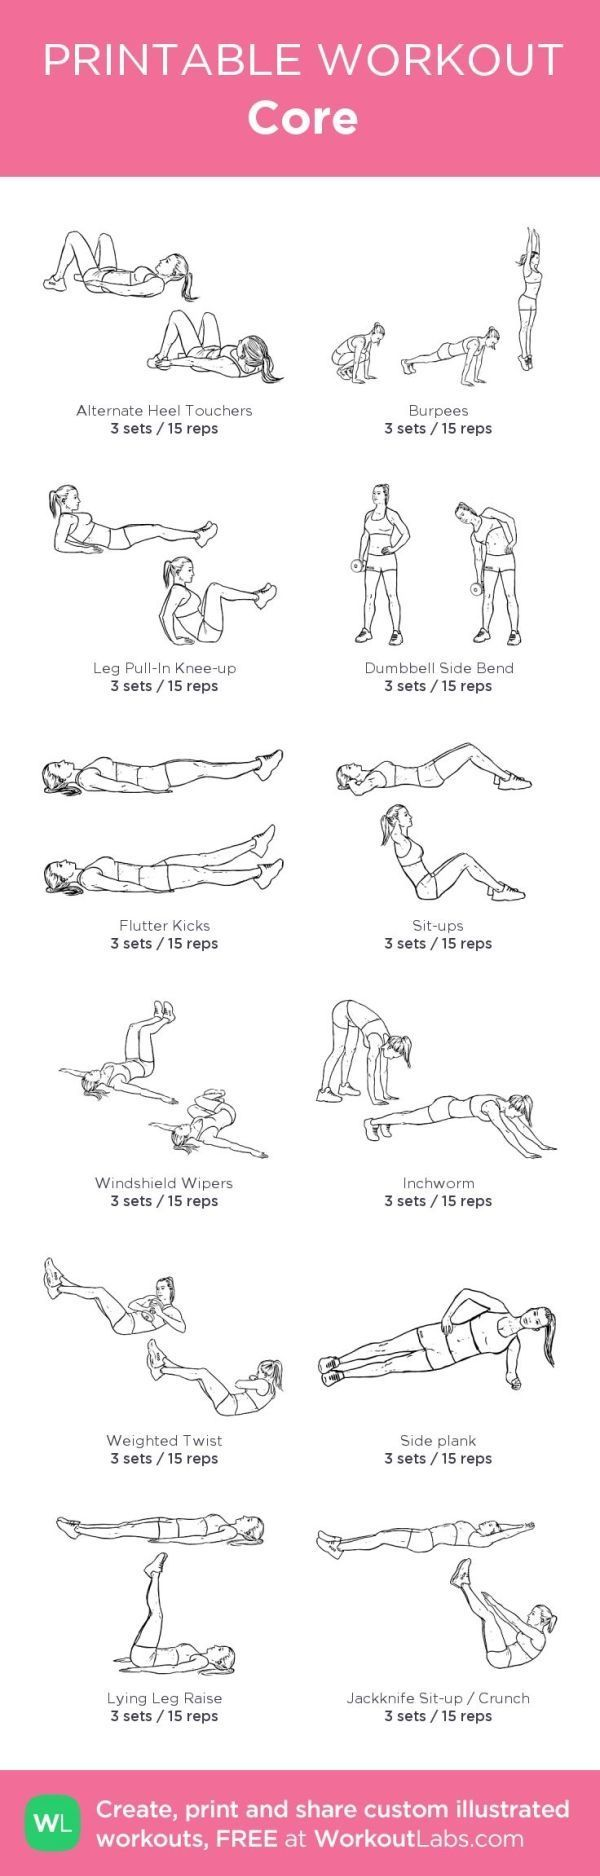 photograph about Printable Workouts named Health Commitment : Main: my customized printable exercise routine by means of